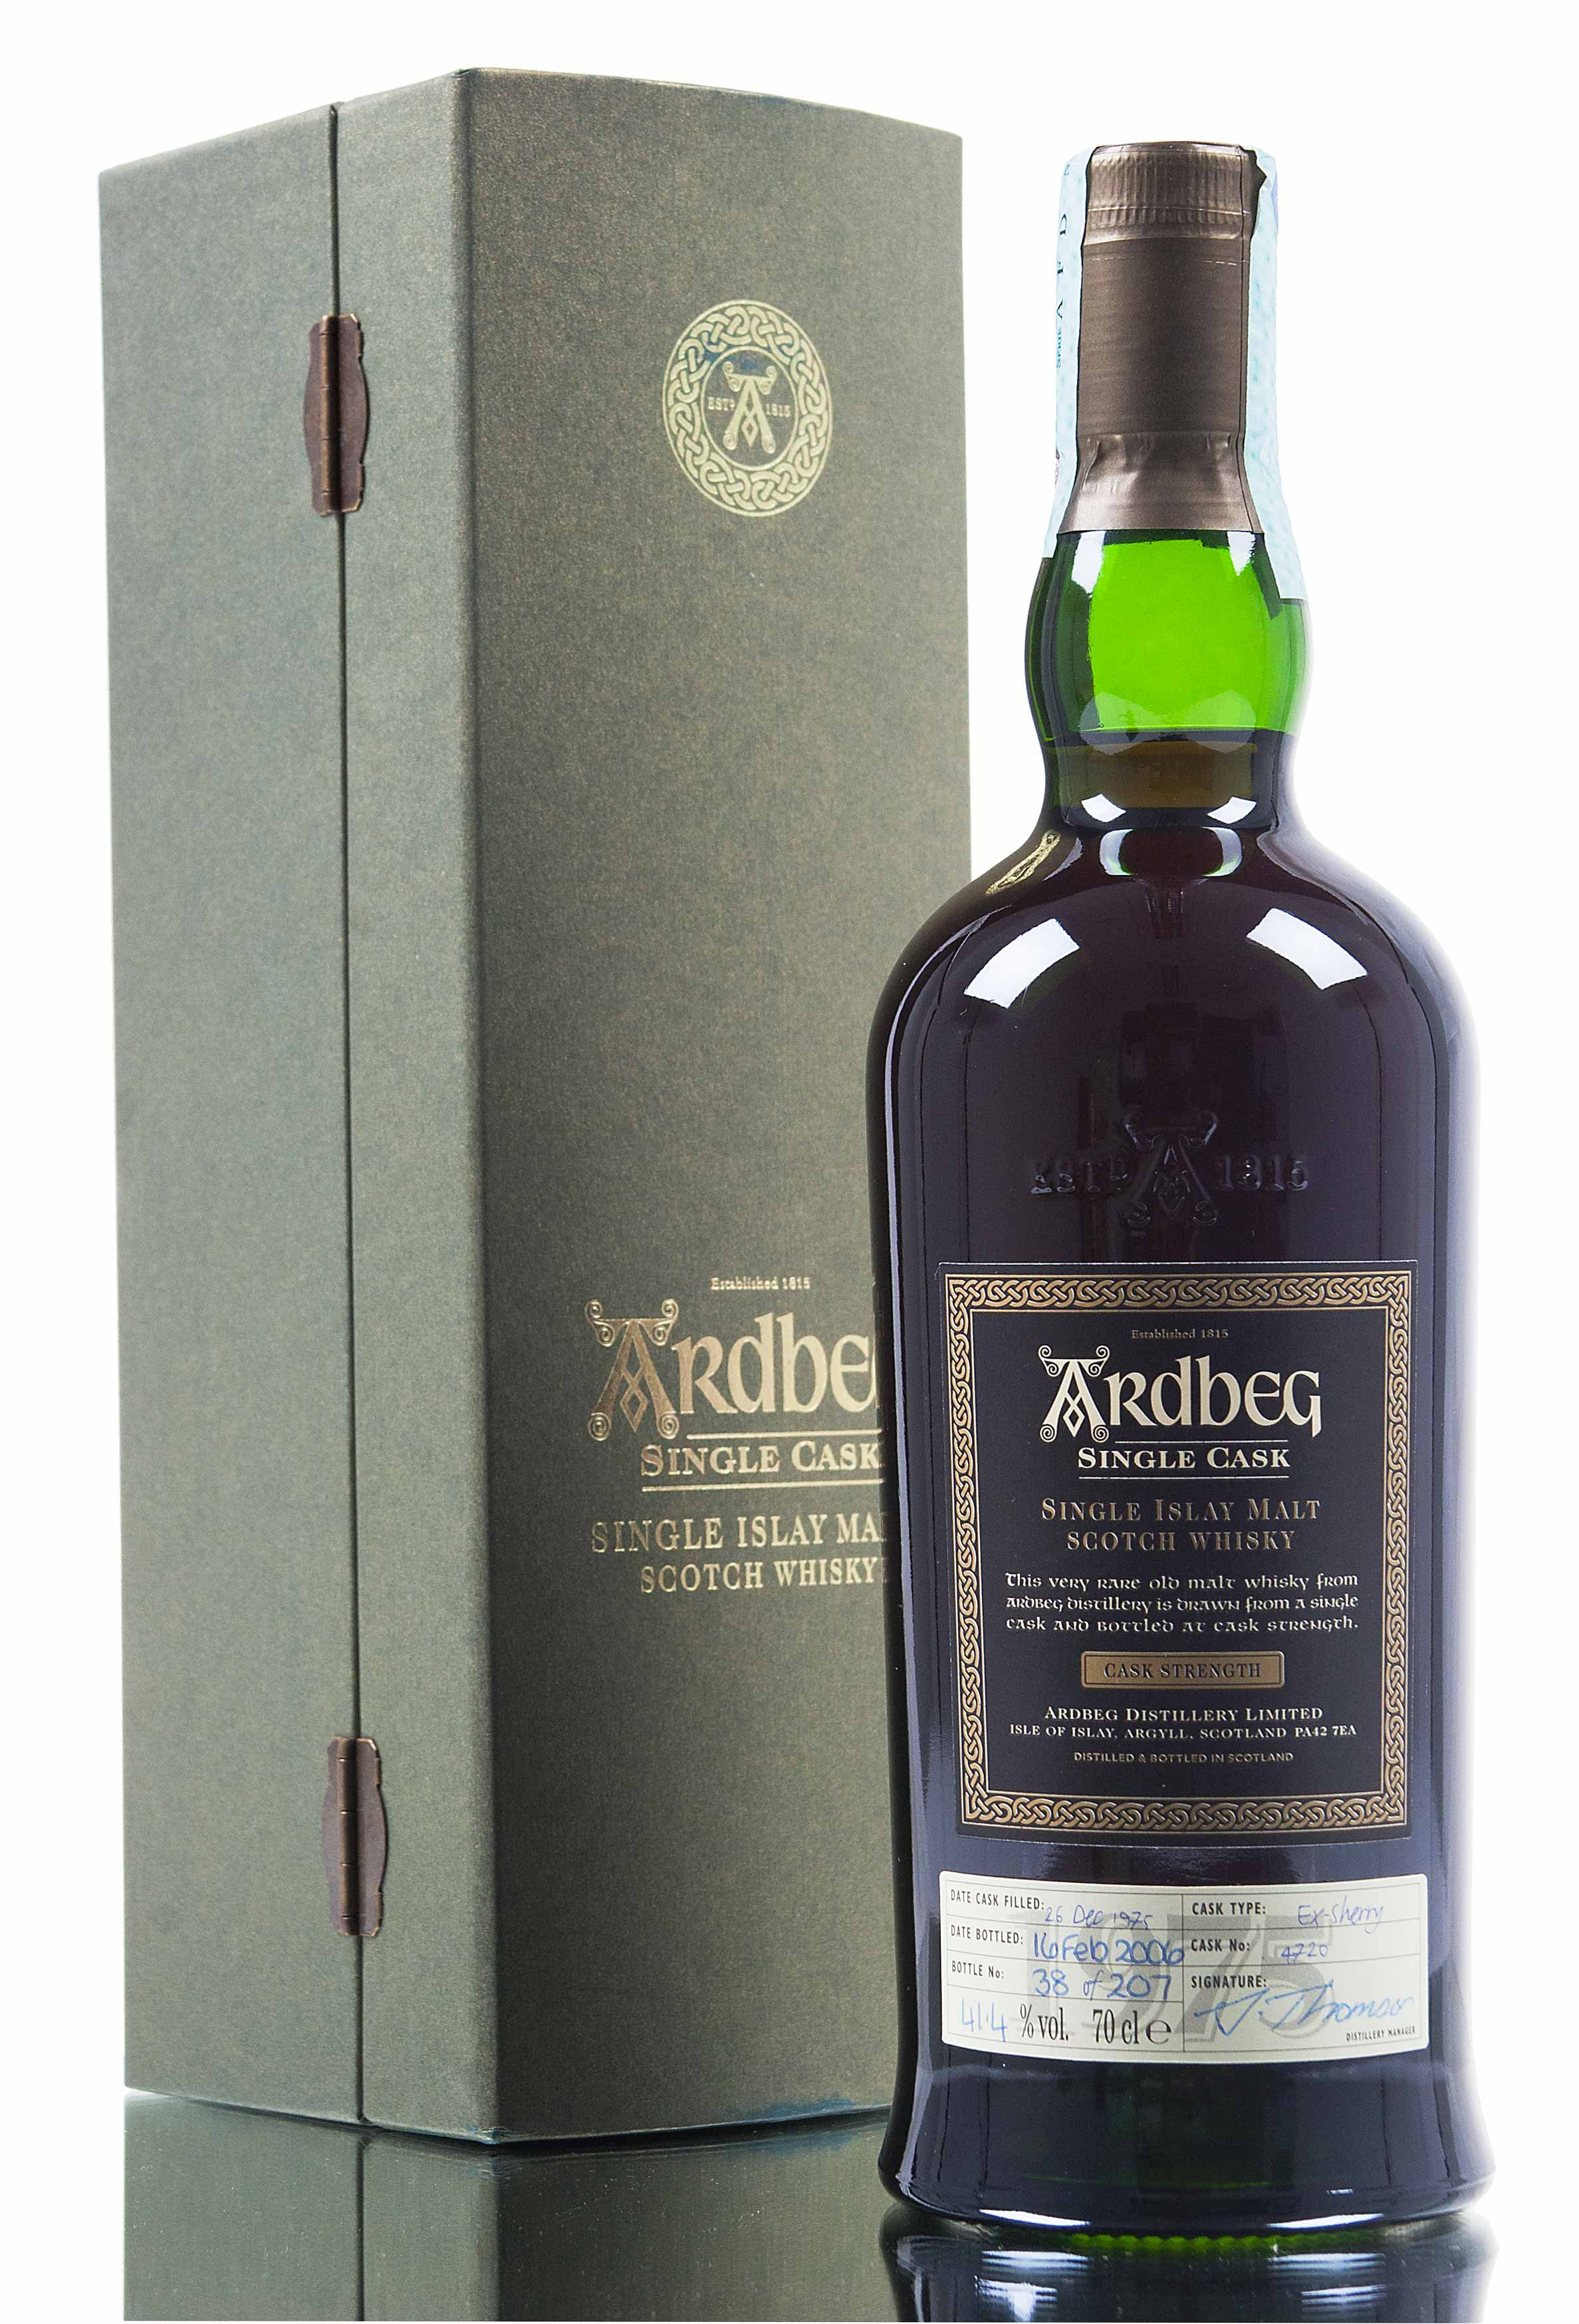 Ardbeg 1975 / Single Cask 4720 / 30 Year Old